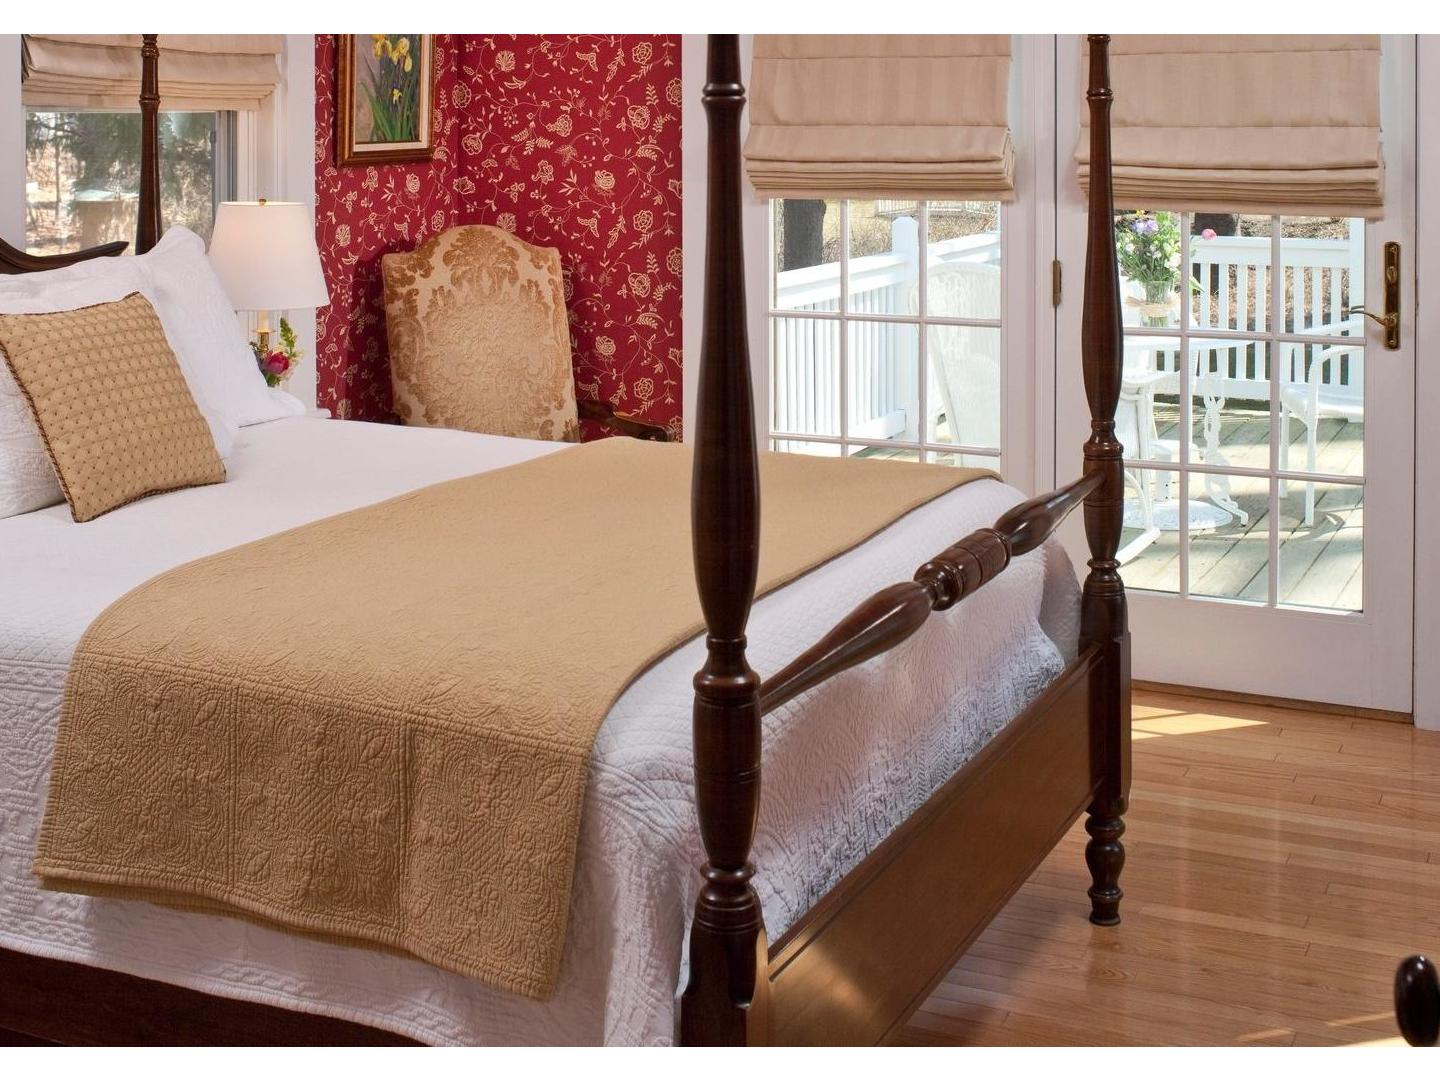 A bedroom with a bed and a window at Maine Stay Inn & Cottages.